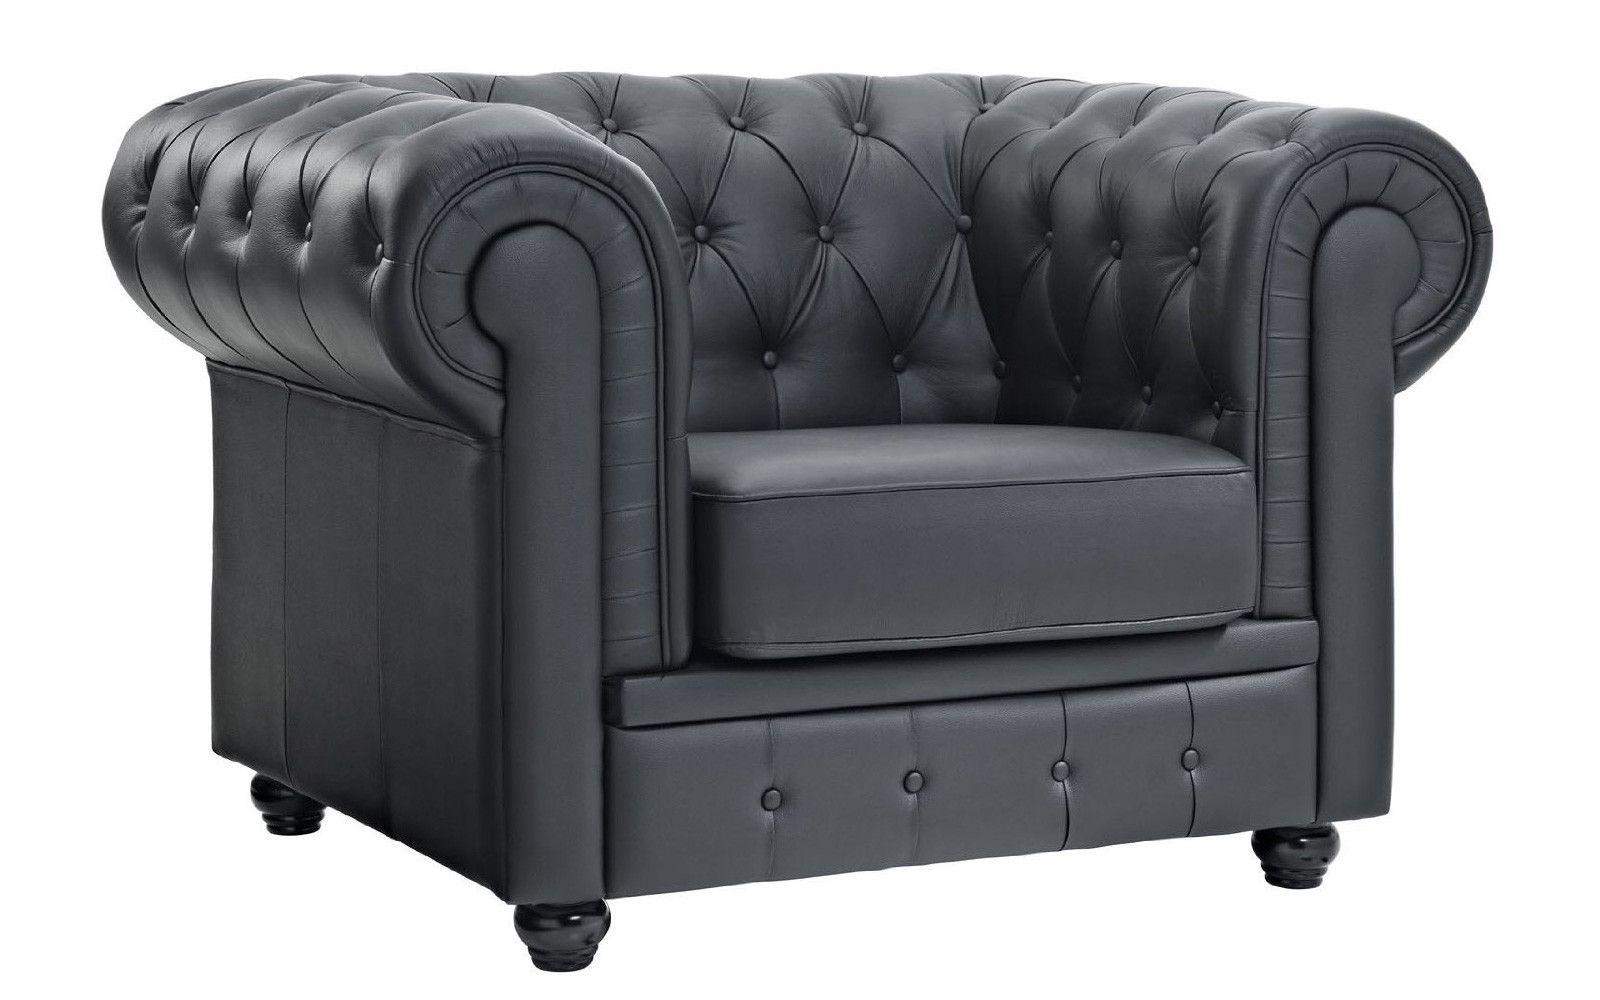 Antique black leather chairs - Classic Scroll Arm Tufted Boned Leather Accent Chair Walmartcom